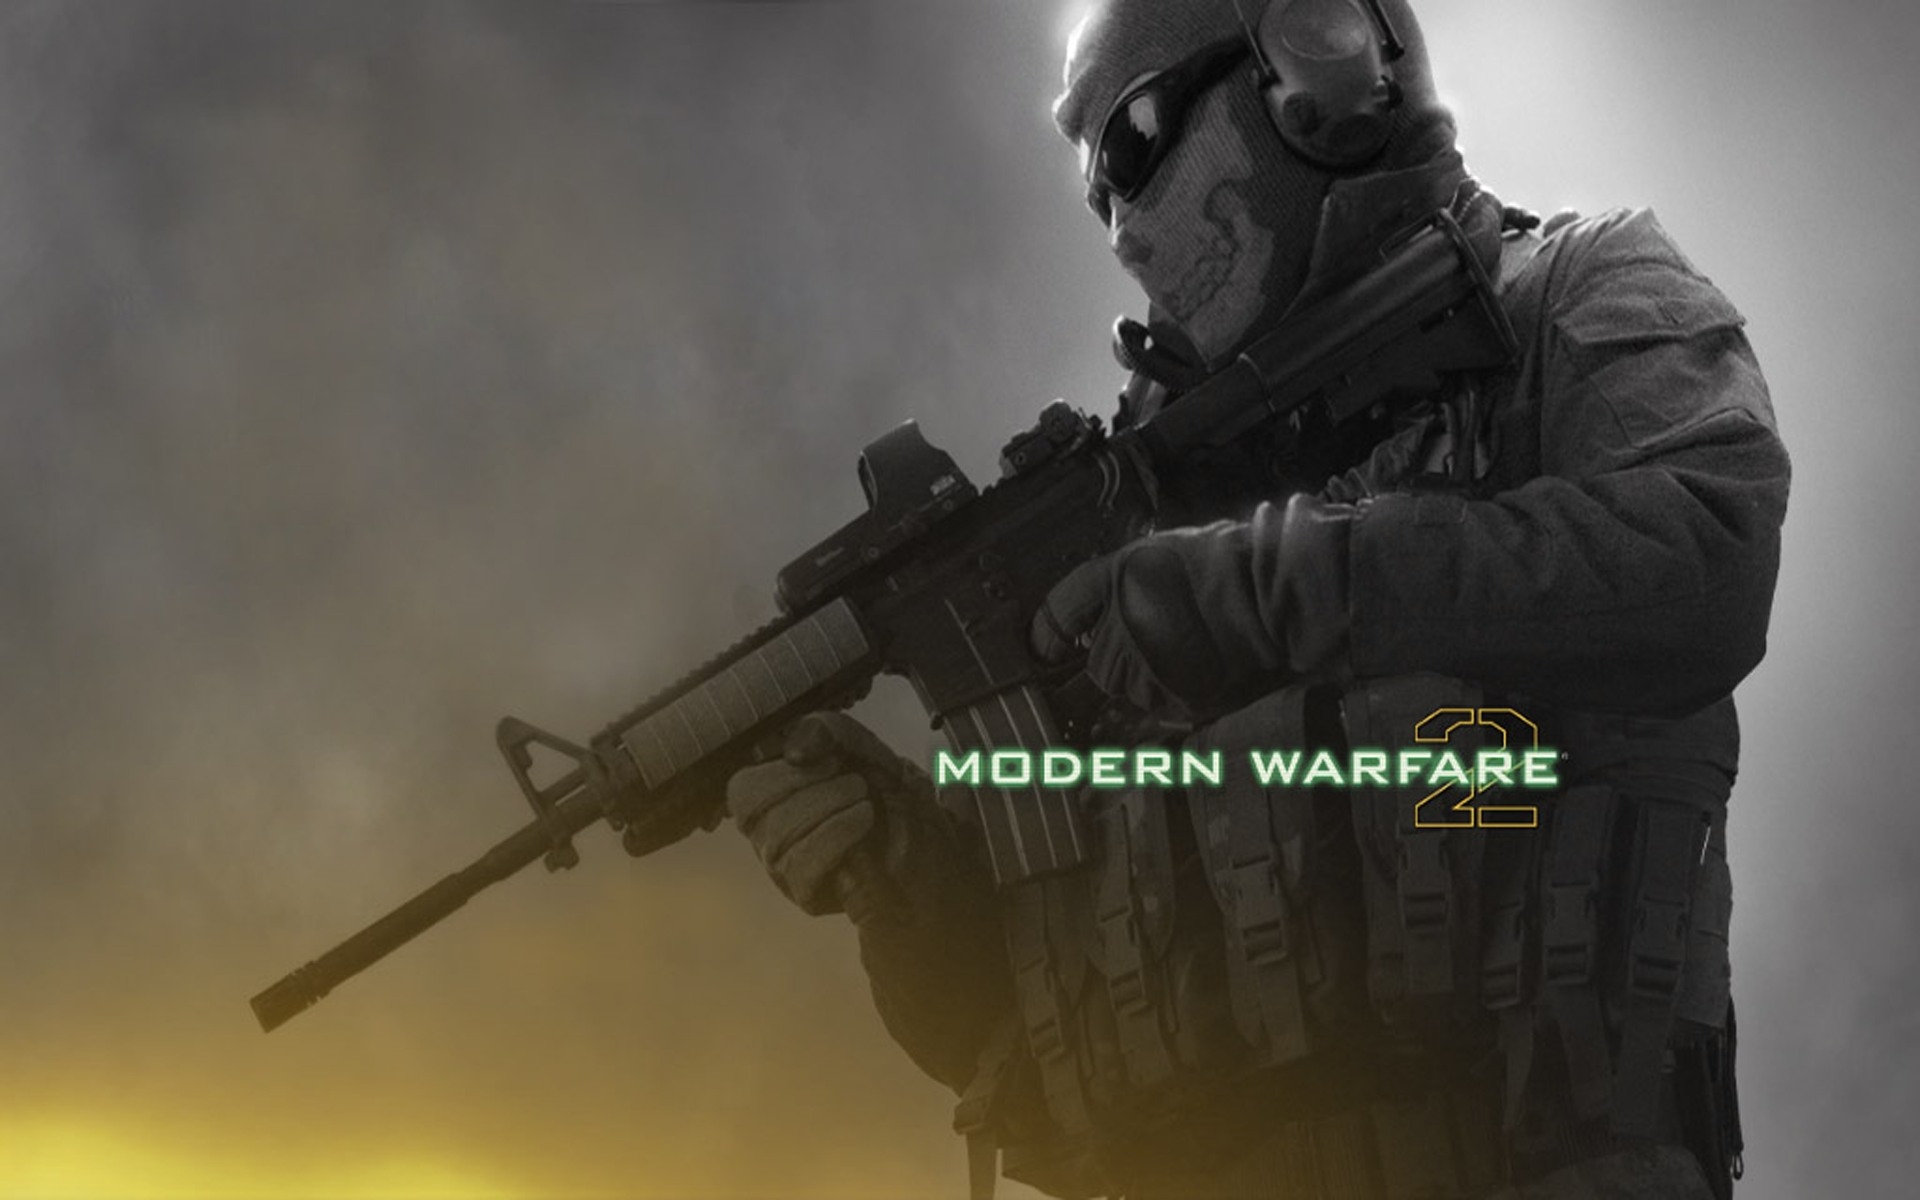 Free Download Call Of Duty Modern Warfare 2 Wallpaper Ghost 5342 Hd Wallpapers In 1920x1200 For Your Desktop Mobile Tablet Explore 49 Cod Ghosts Wallpaper Call Of Duty Ghost